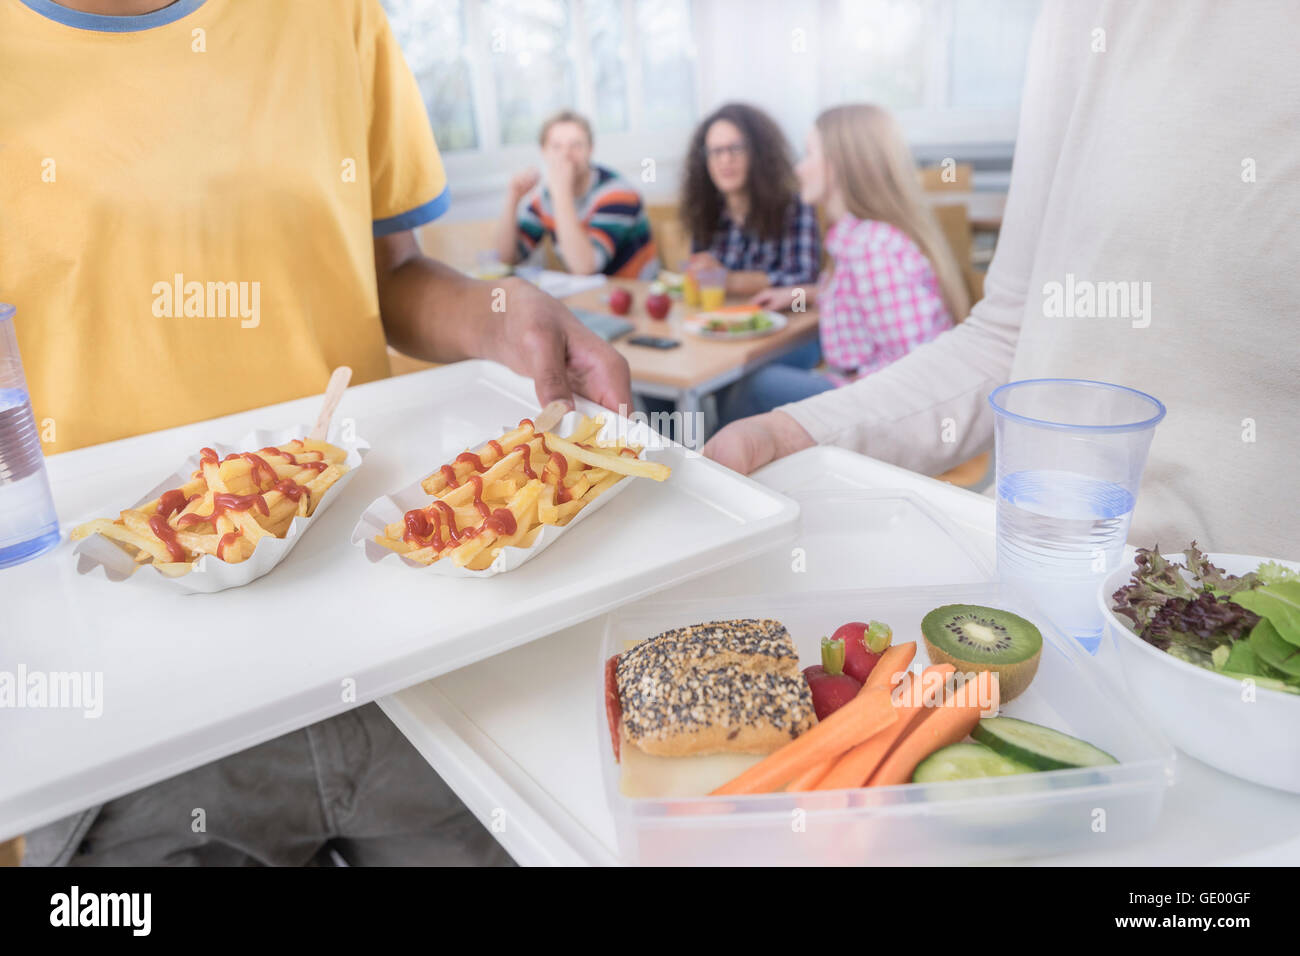 University students having lunch in canteen, Bavaria, Germany Stock Photo